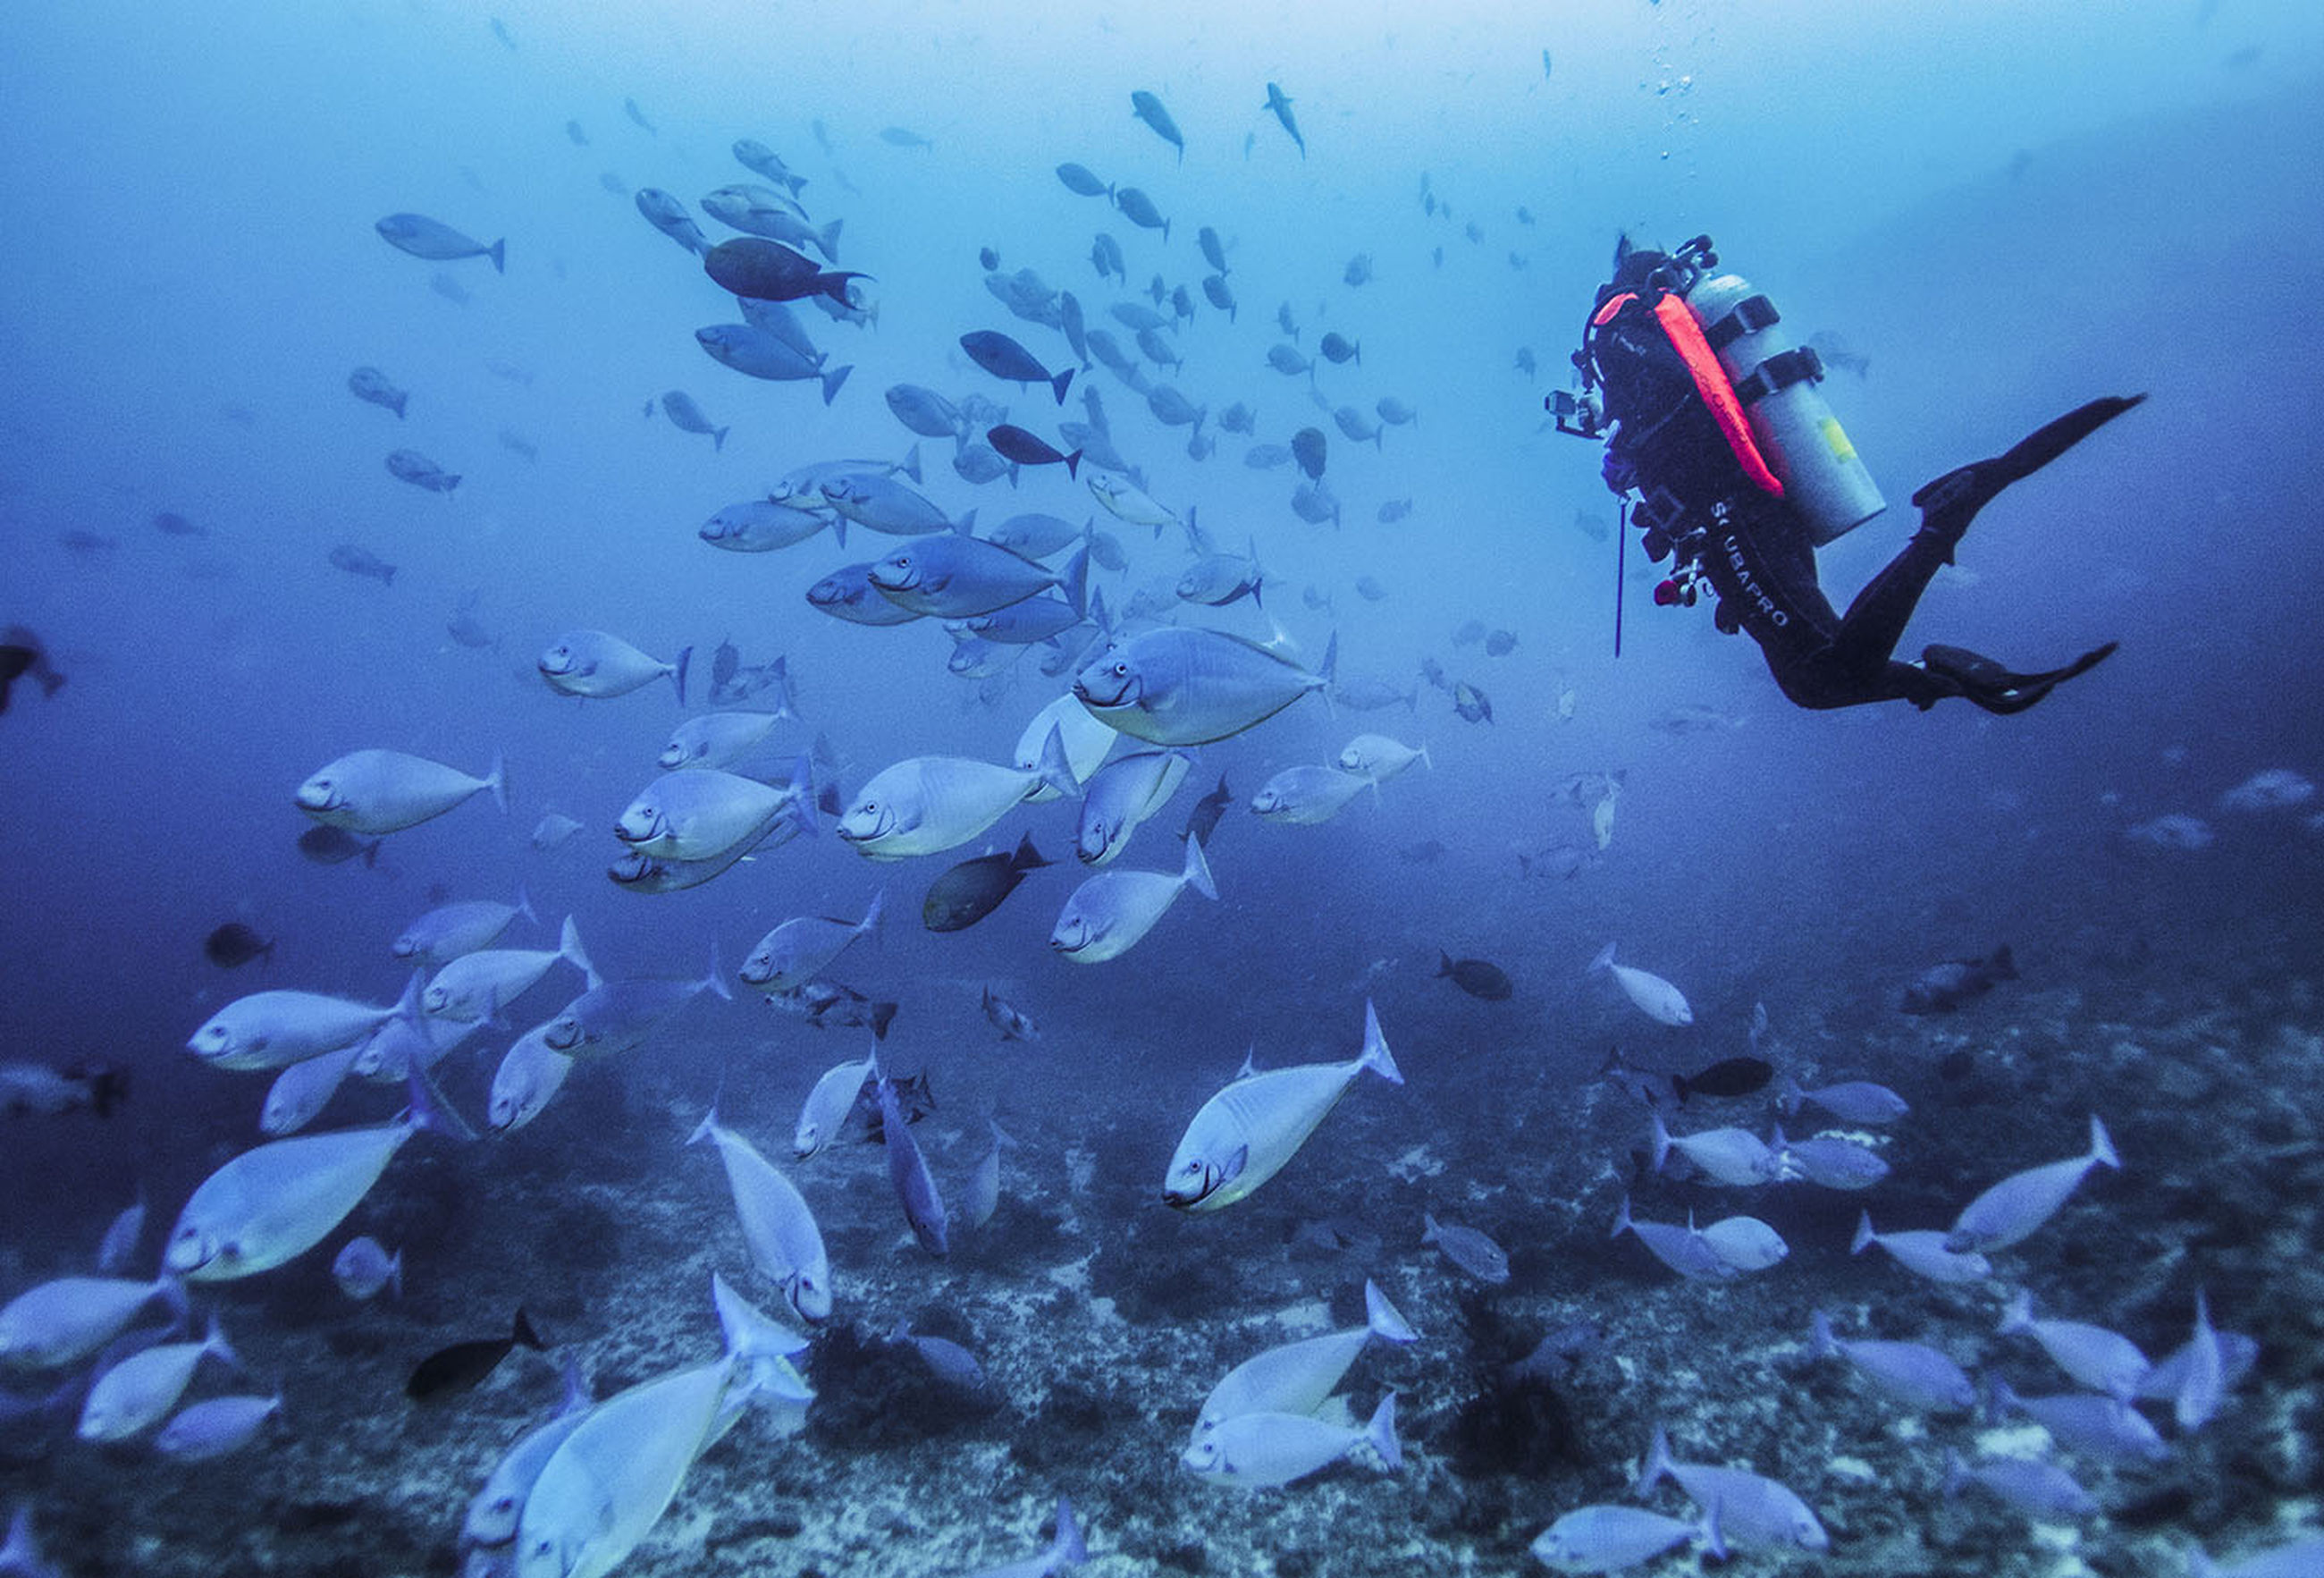 large group of animals, fish, real people, underwater, water, scuba diving, adventure, undersea, swimming, animal themes, one person, animals in the wild, nature, sea life, leisure activity, sea, day, beauty in nature, scuba diver, outdoors, people